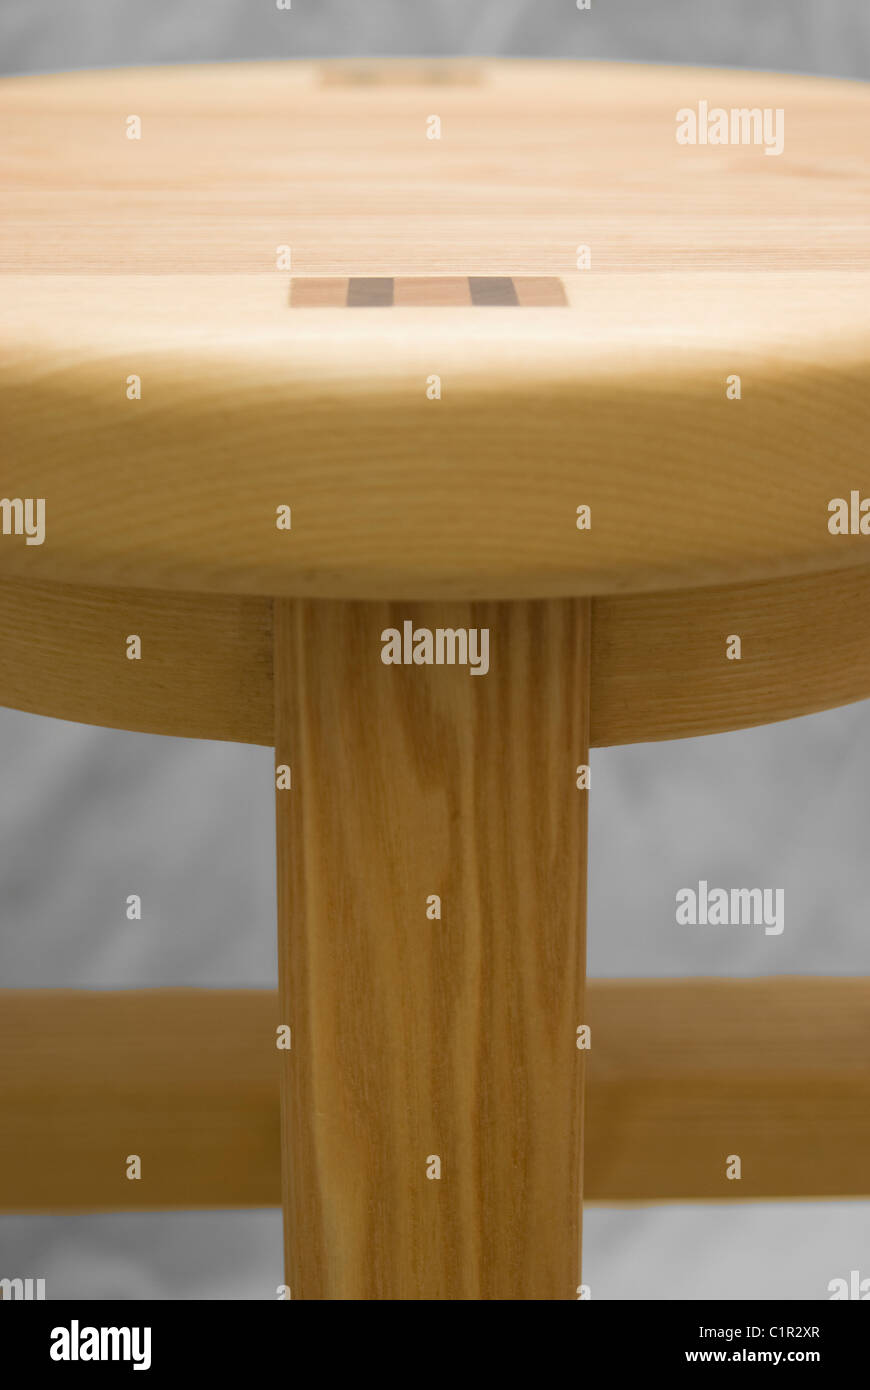 close up of a wooden stool, wood structure craftsmanship - Stock Image